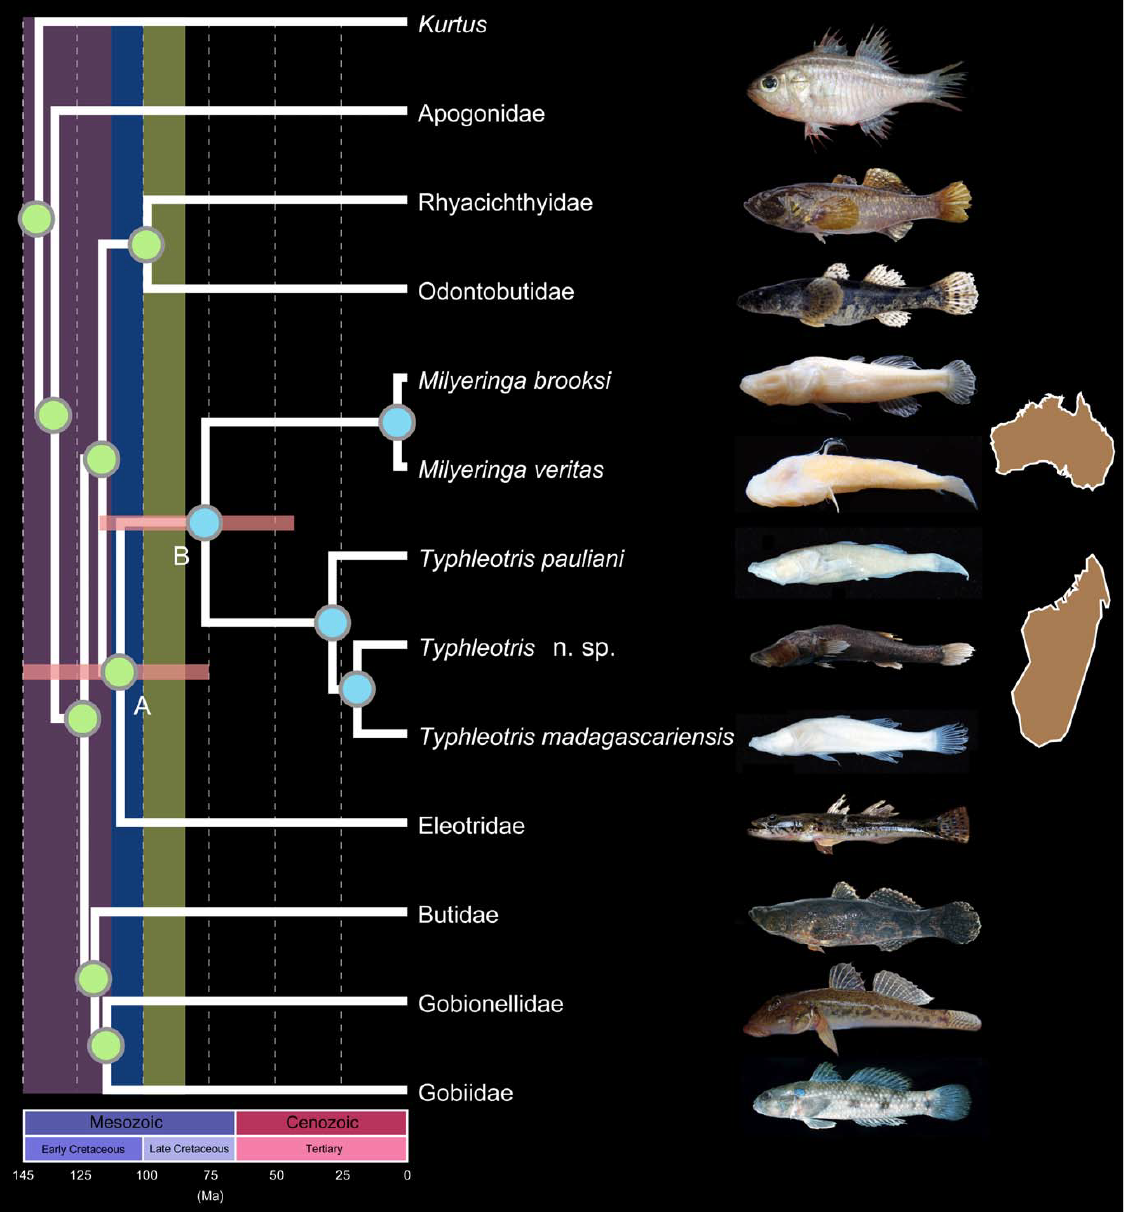 Biogeography and Evolution of Gobies - 11. Chakrabarty, P., Davis, M.P., and Sparks, J.S. (2012). The first record of a trans-oceanic sister-group relationship between obligate vertebrate troglobites. PLoS ONE. 7(8): e44083.Google ScholarOPEN ACCESS